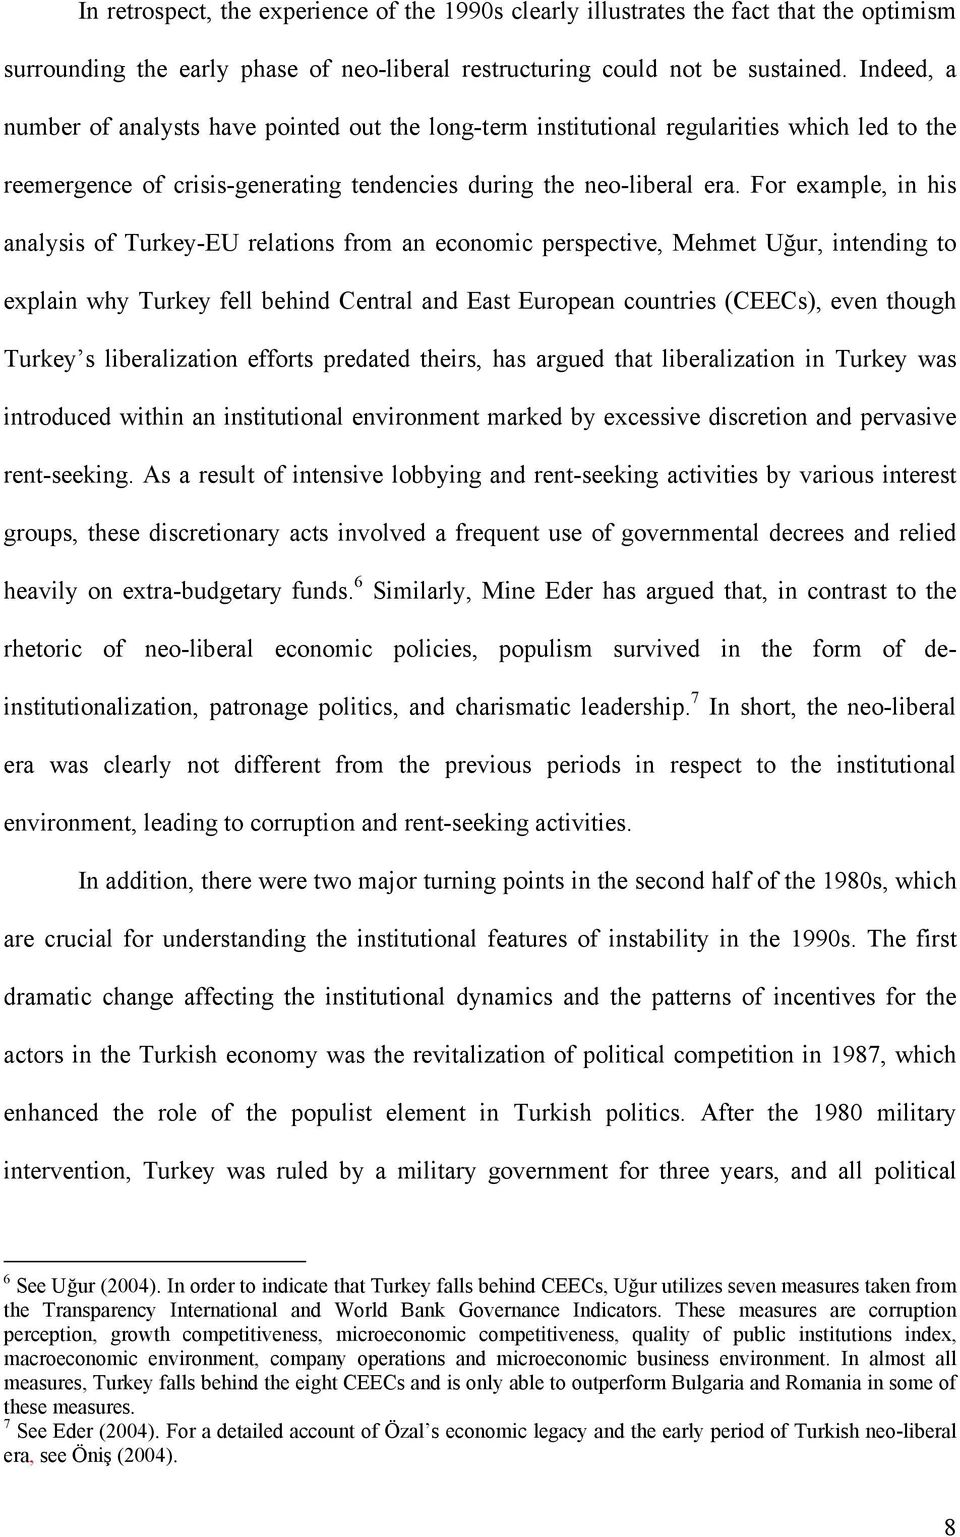 For example, in his analysis of Turkey-EU relations from an economic perspective, Mehmet Uğur, intending to explain why Turkey fell behind Central and East European countries (CEECs), even though